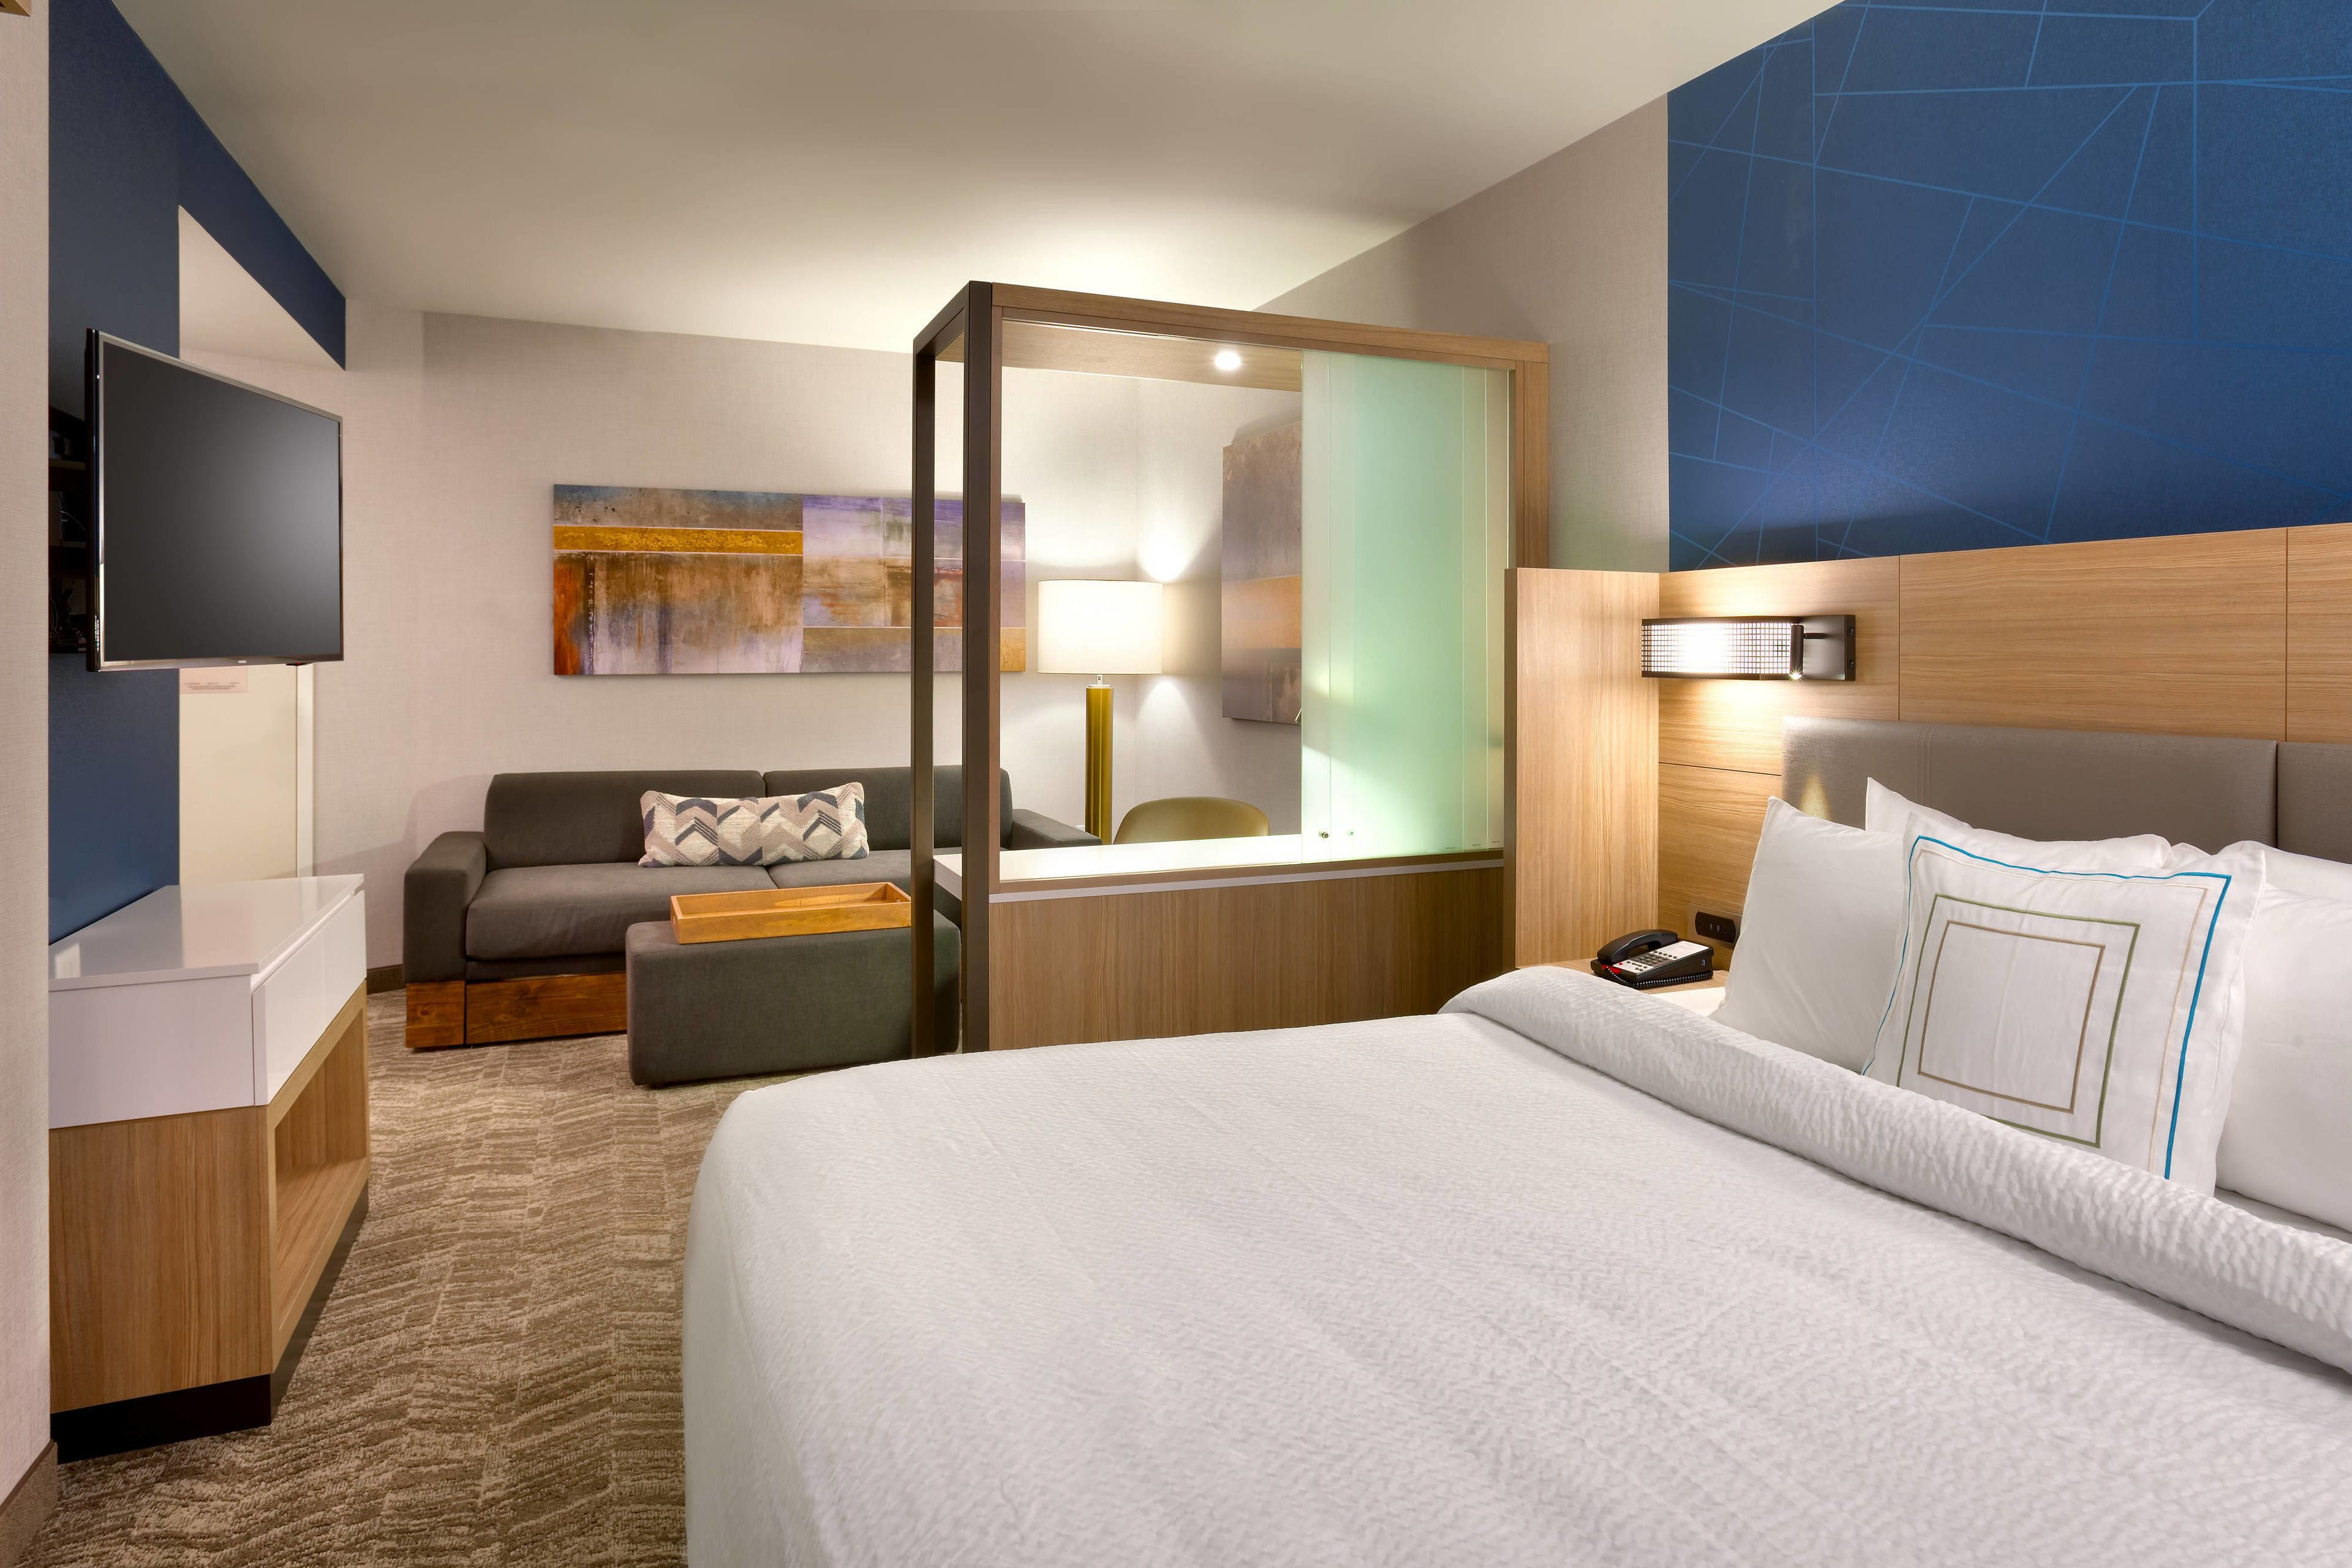 Courtesy of SpringHill Suites by Marriott Salt Lake City-South Jordan / Expedia